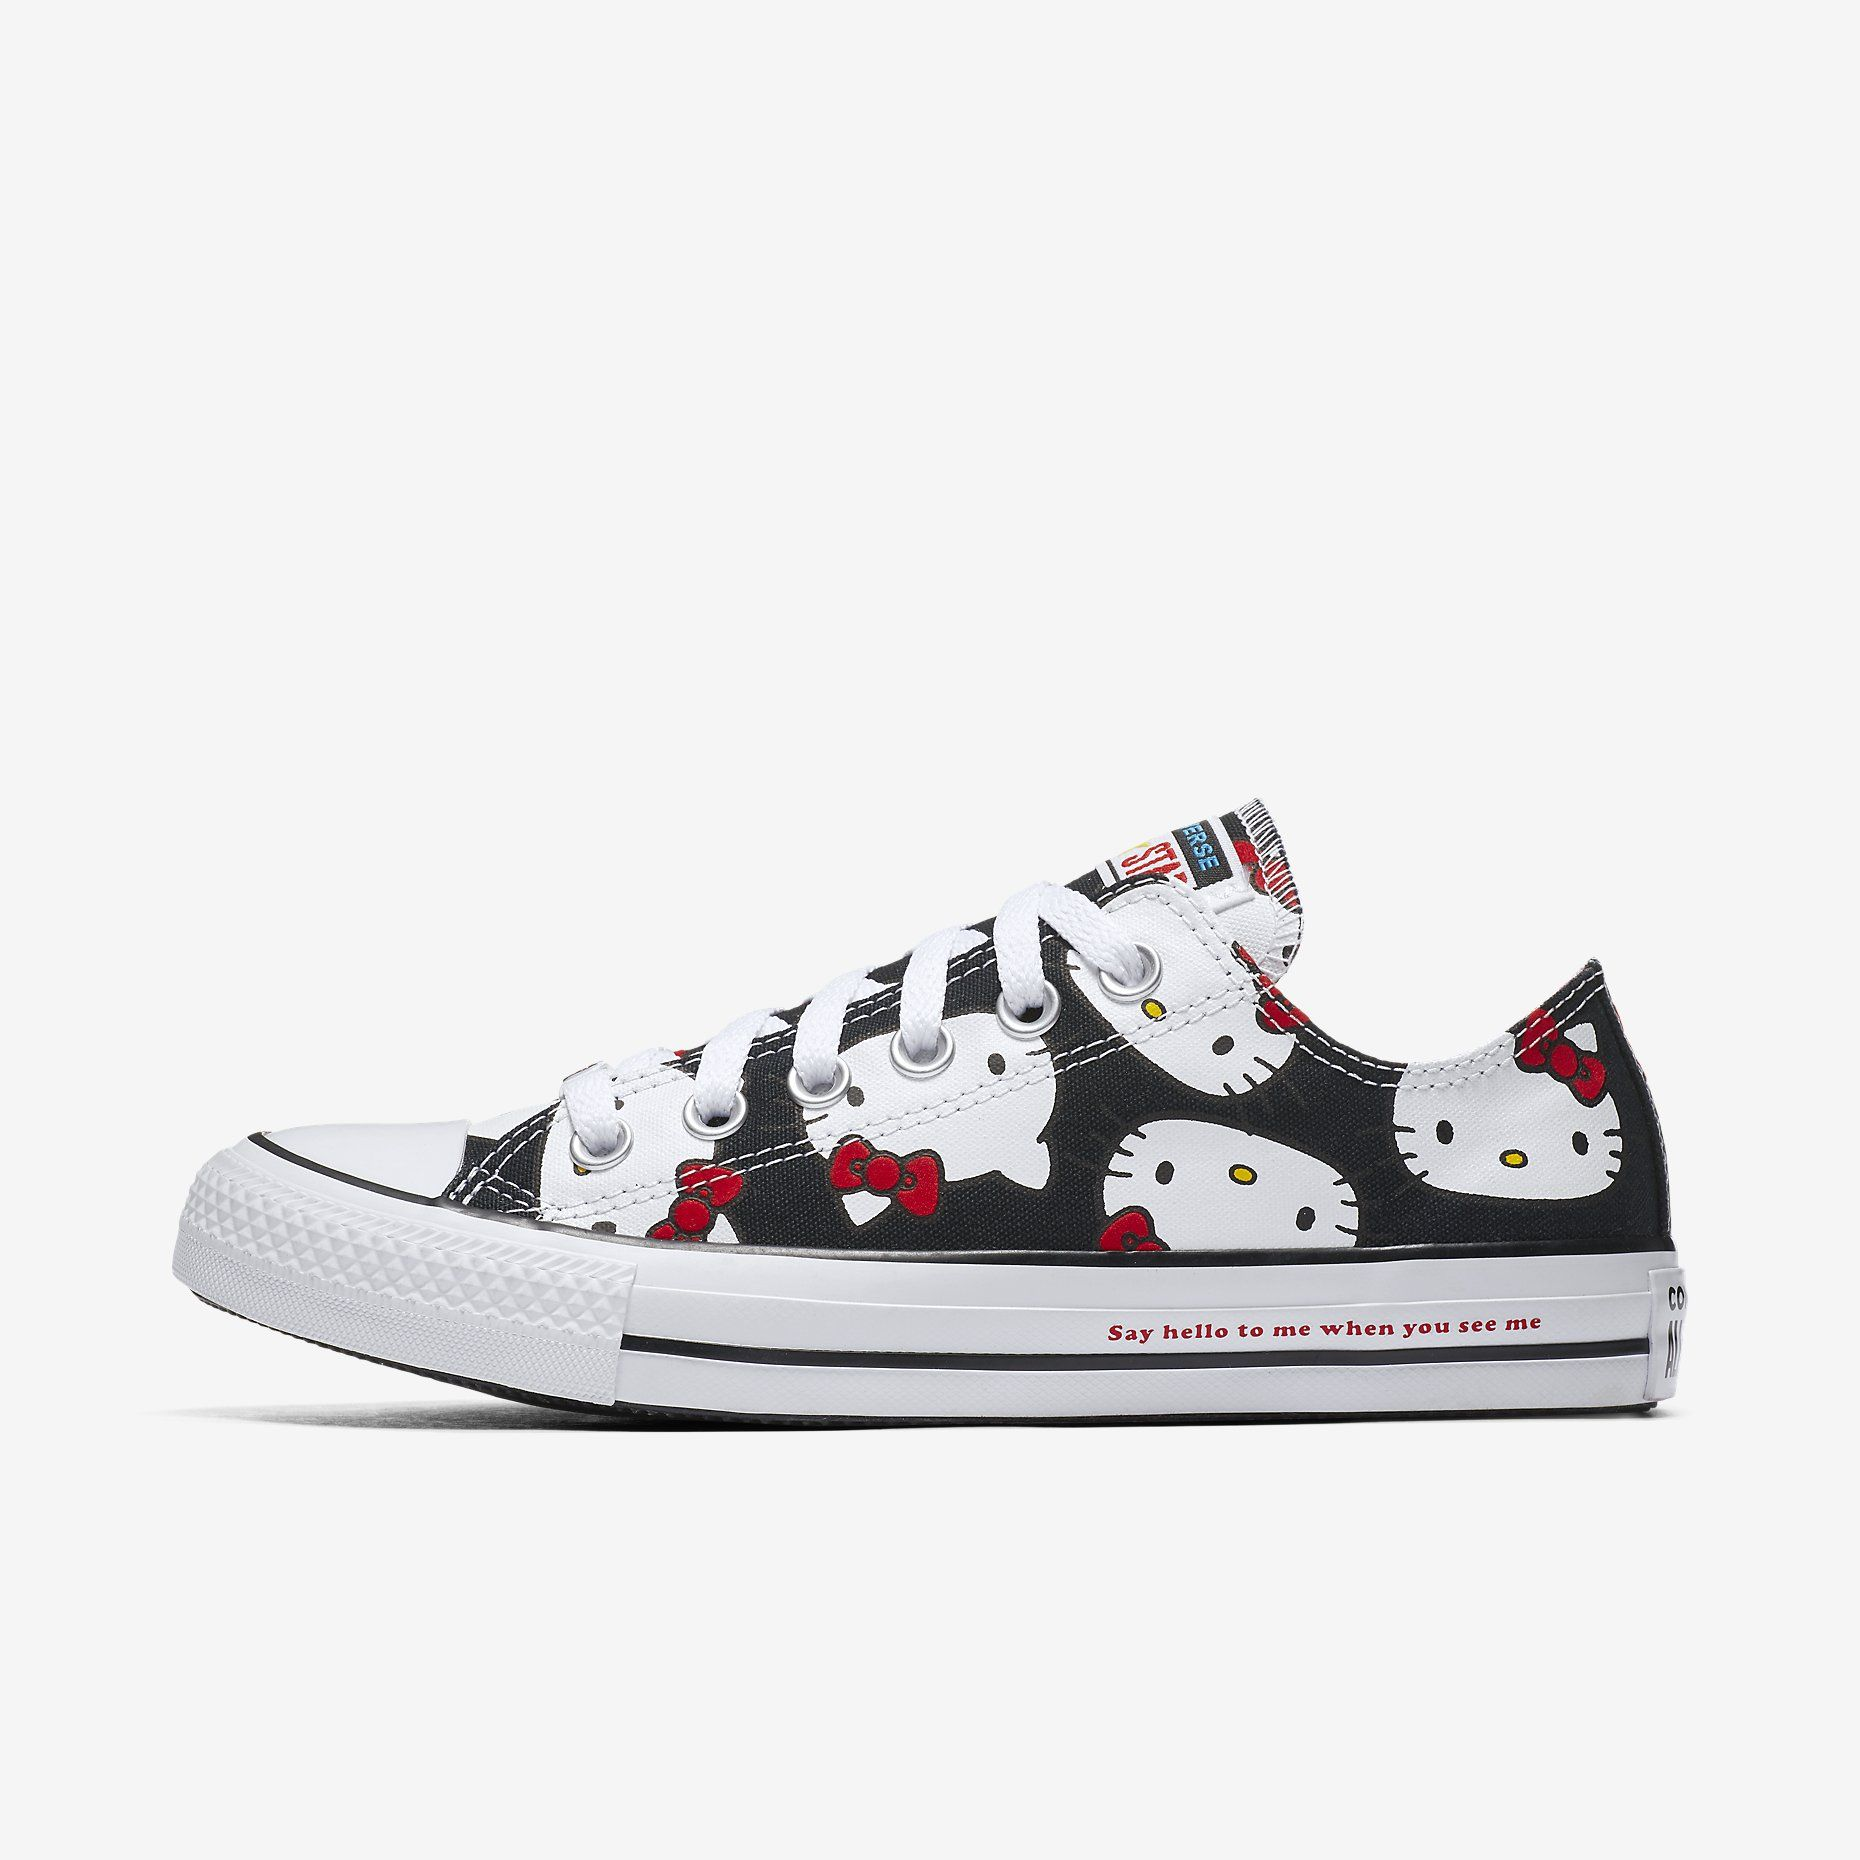 6967215647ae Converse x Hello Kitty Chuck Taylor All Star Canvas Low Top Unisex Shoe.  Nike.com